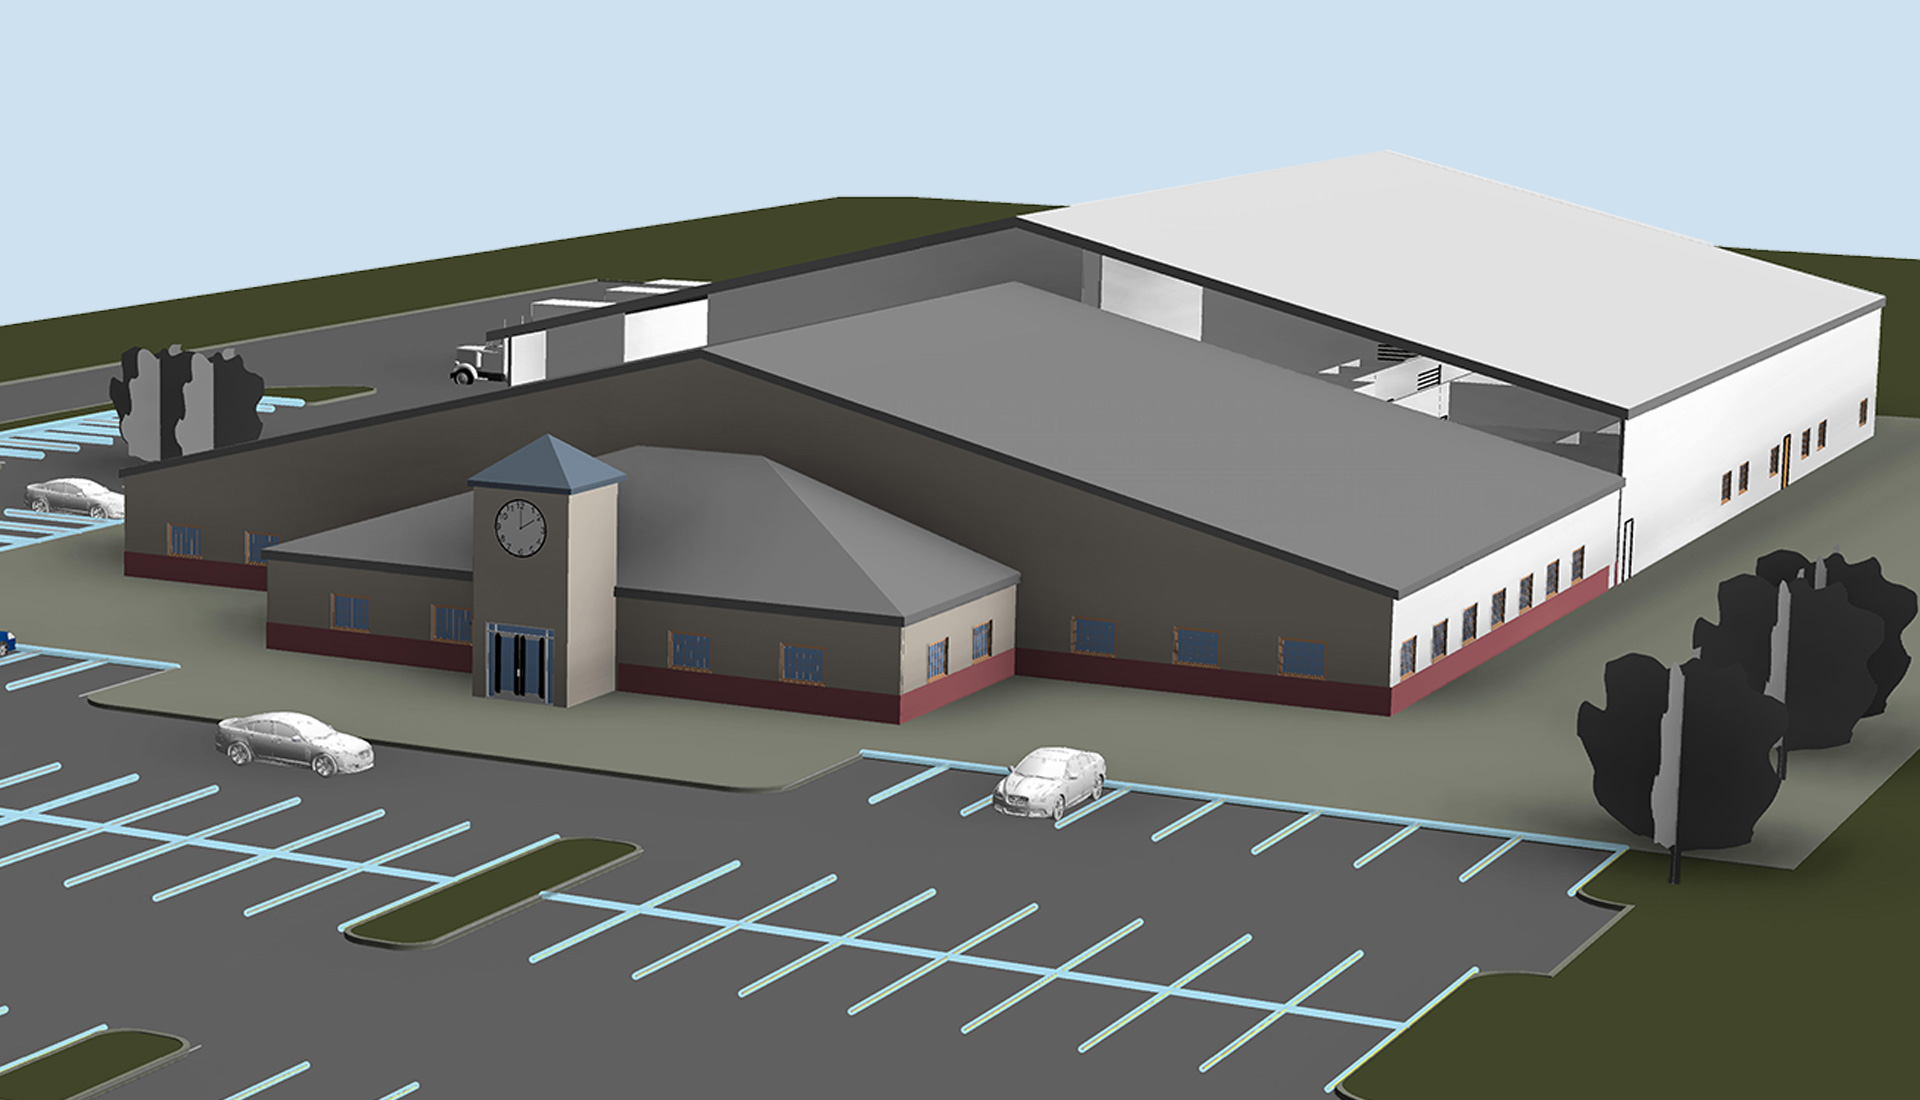 3D-Architectural-Model_Accutime-Systems_Industrial-Project_Revit-Modeling-by-United-BIM